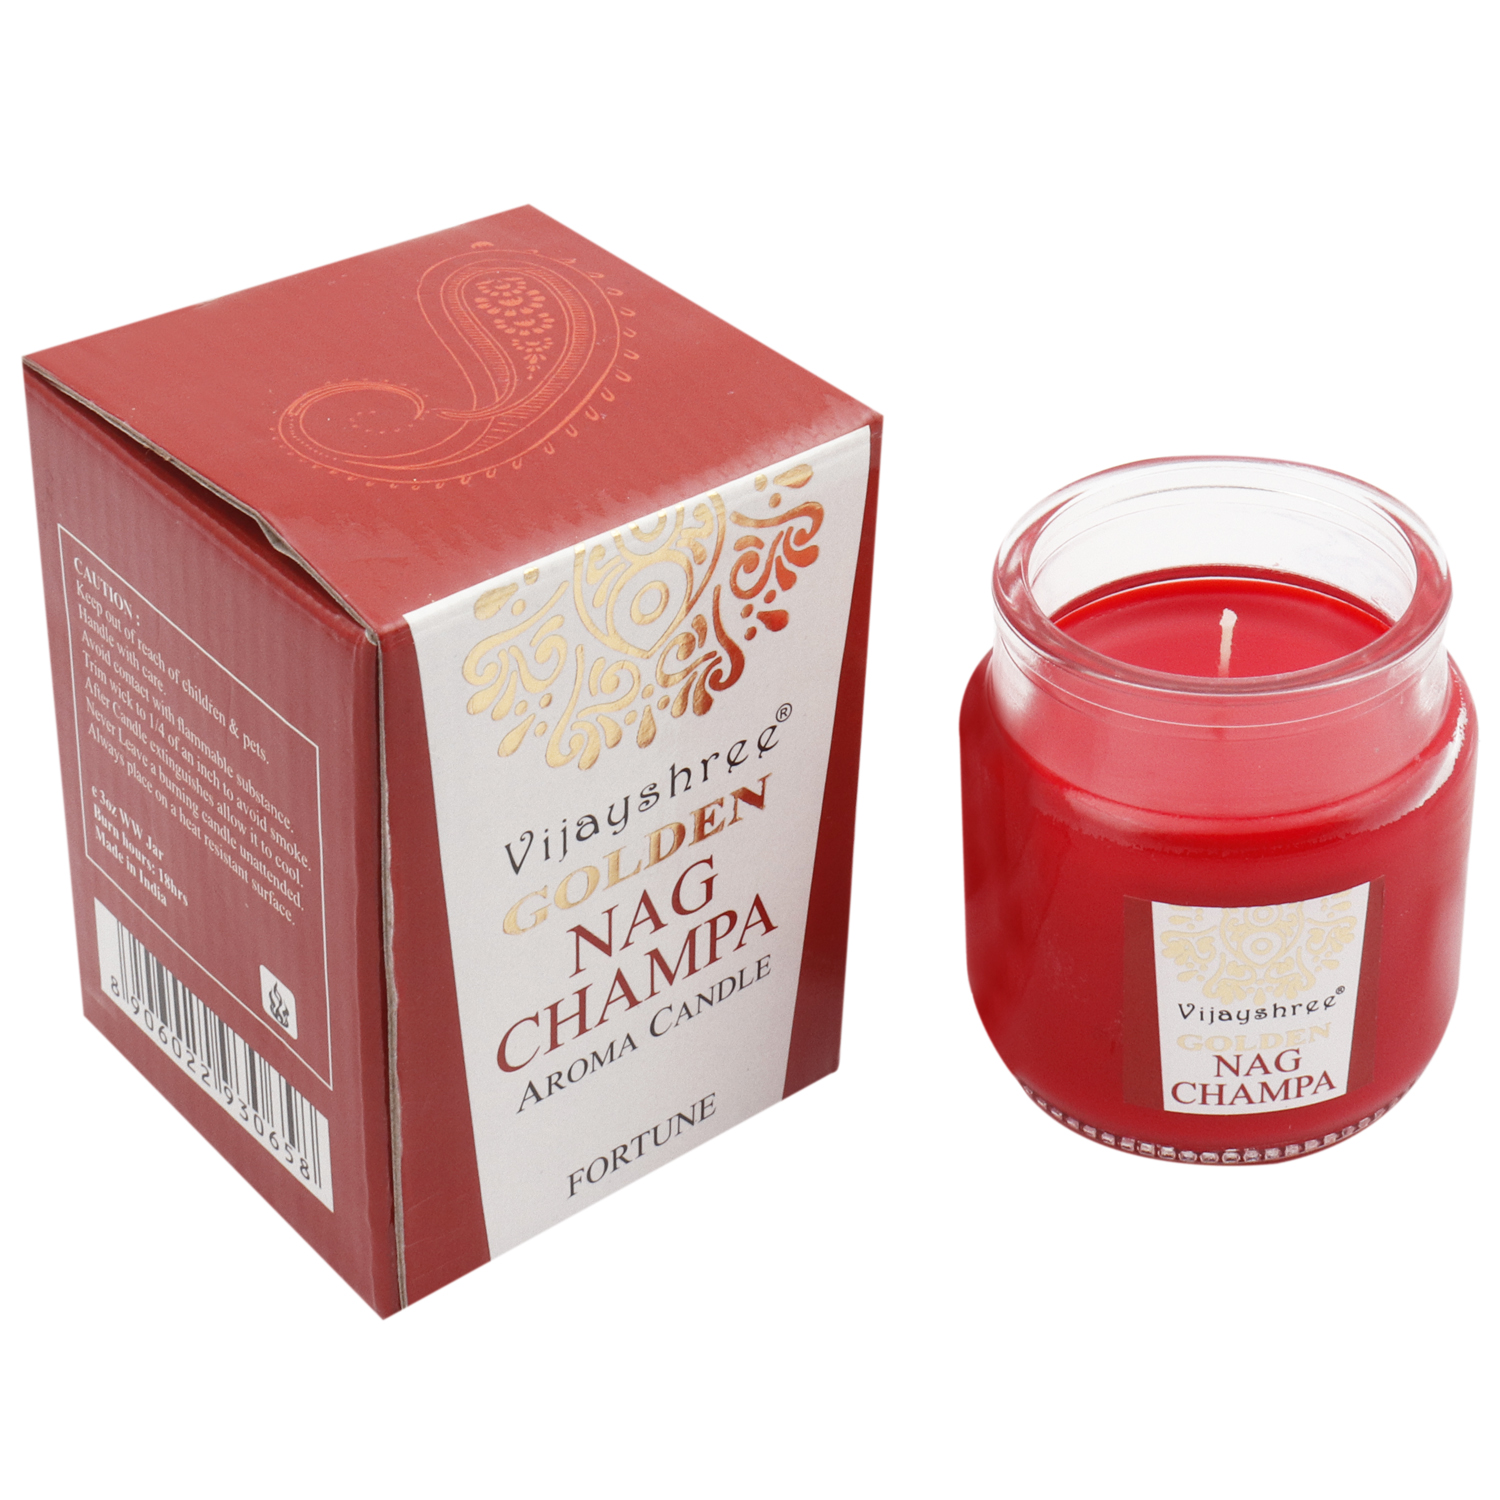 Aroma Candle - Fortune